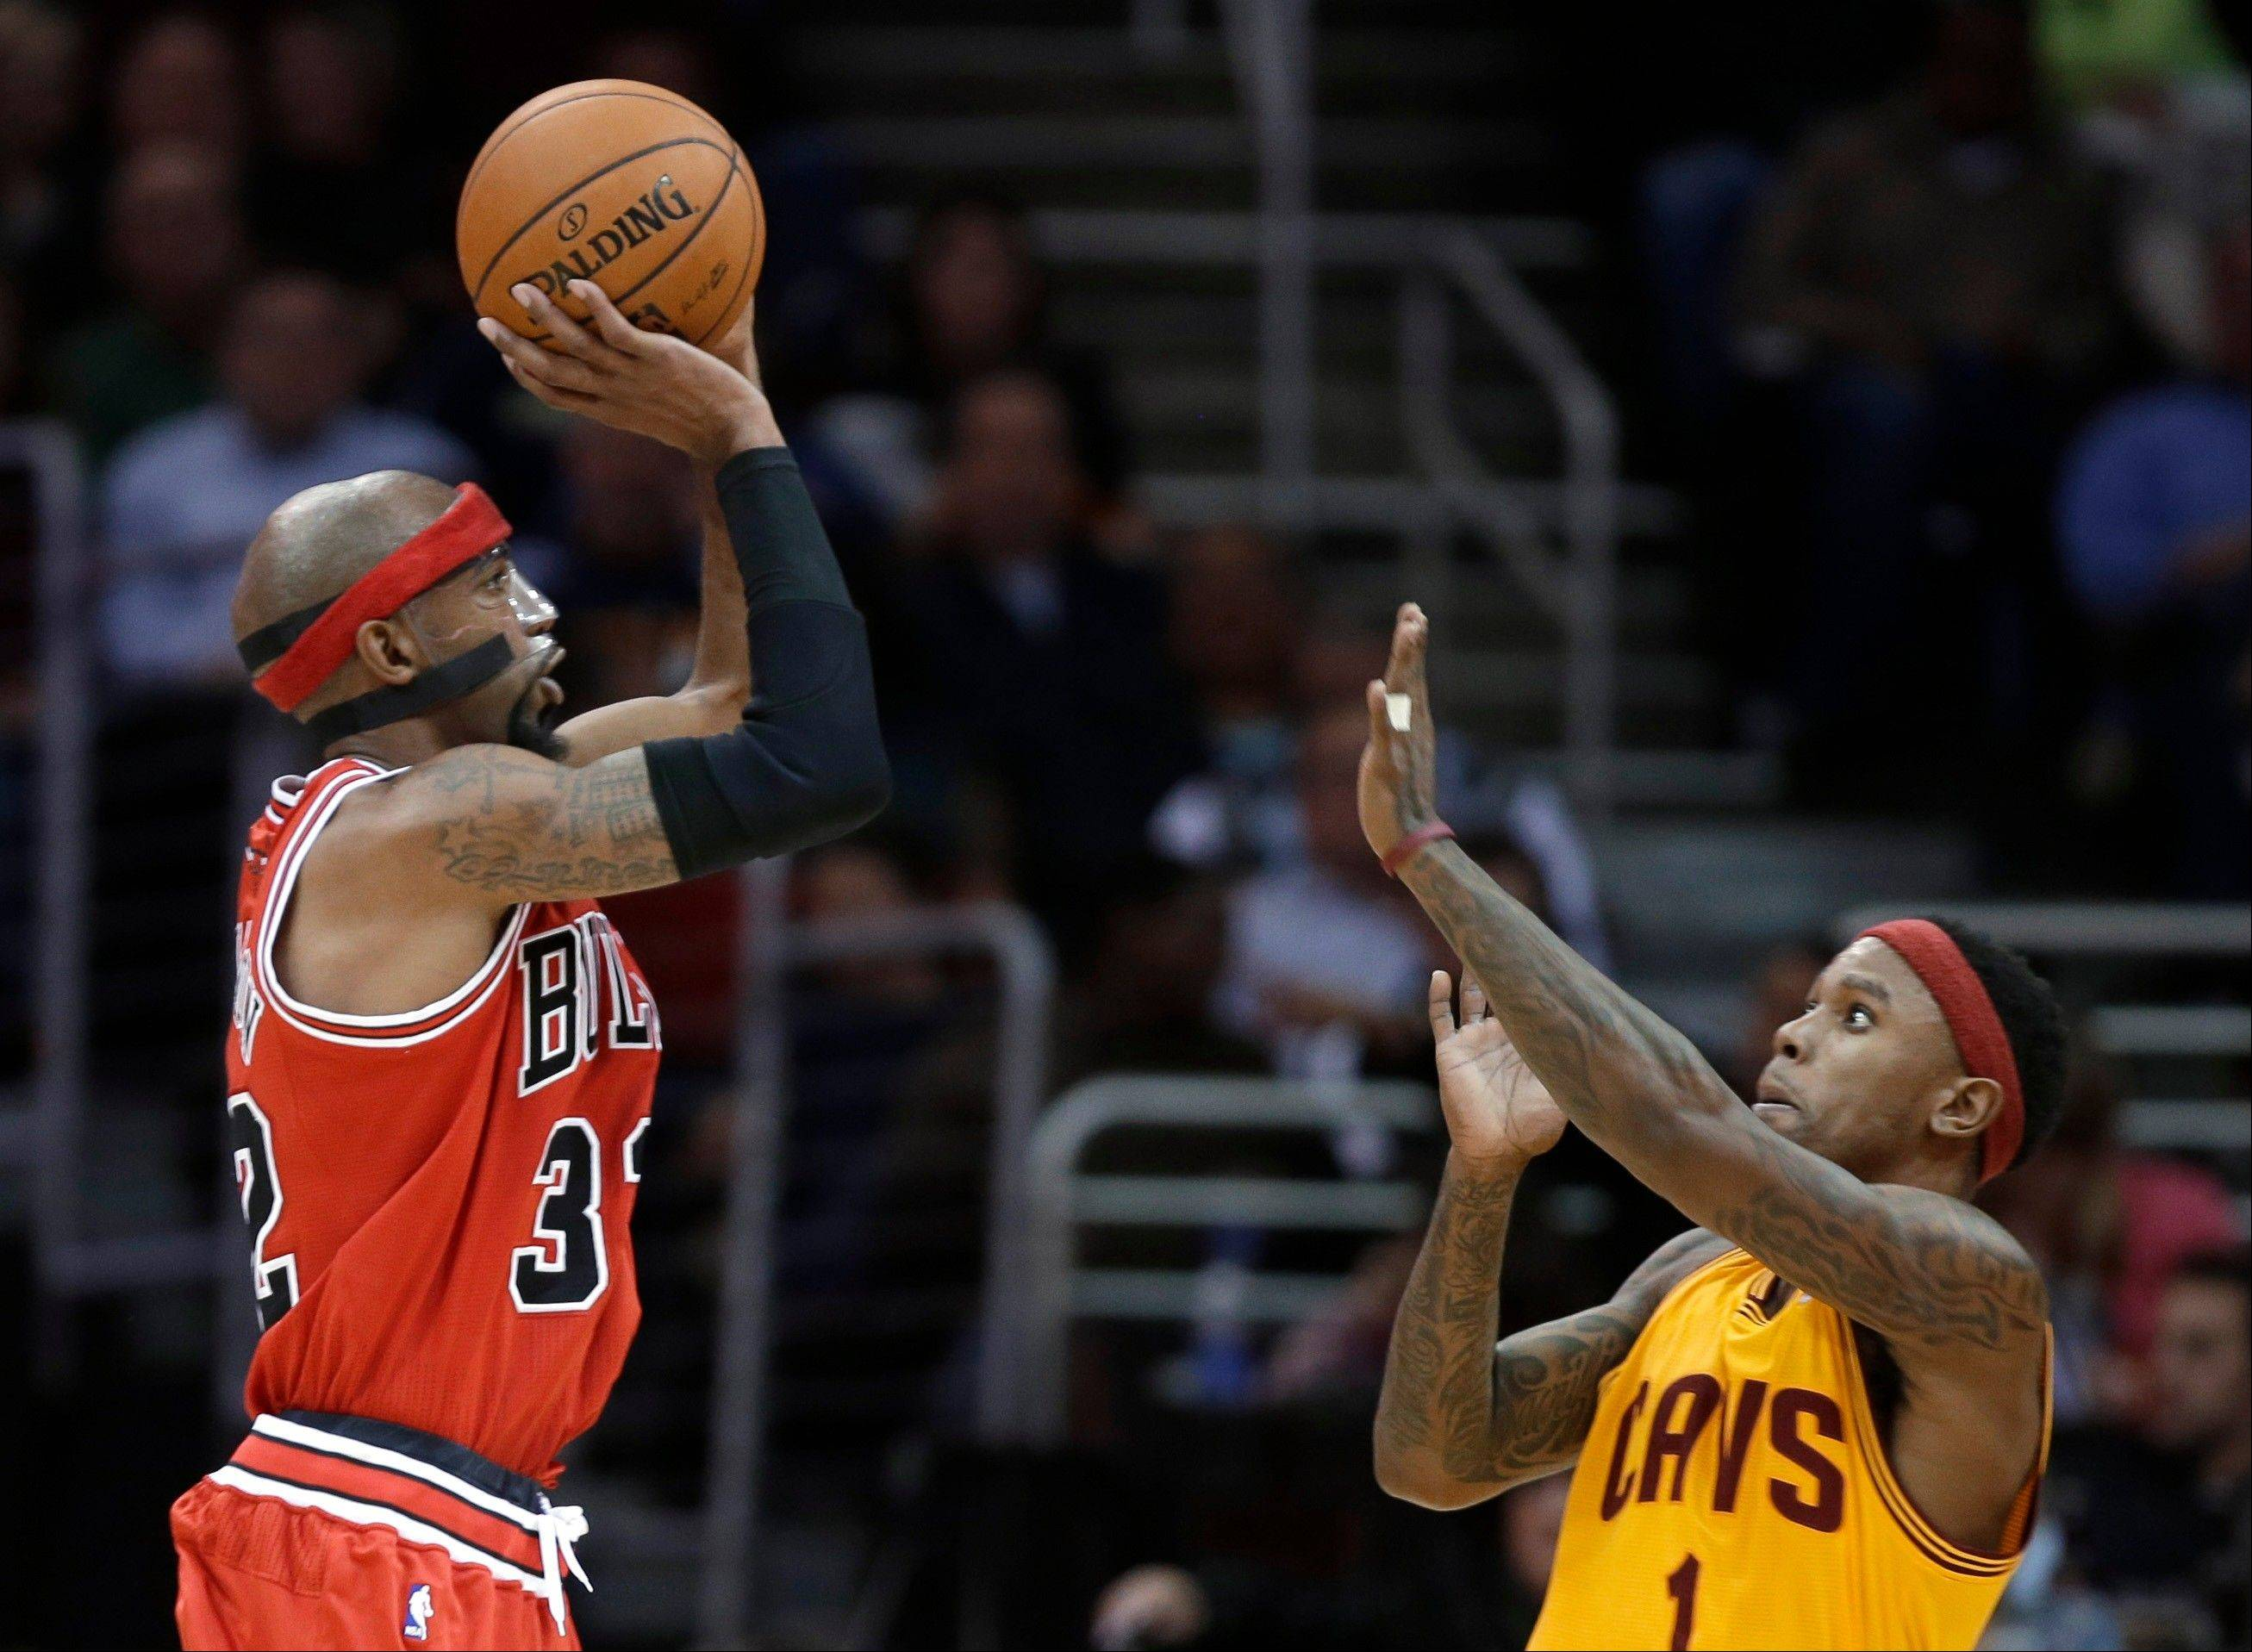 Richard Hamilton shoots over Cleveland's Daniel Gibson during the third quarter of the Bulls' victory Friday night in Cleveland.